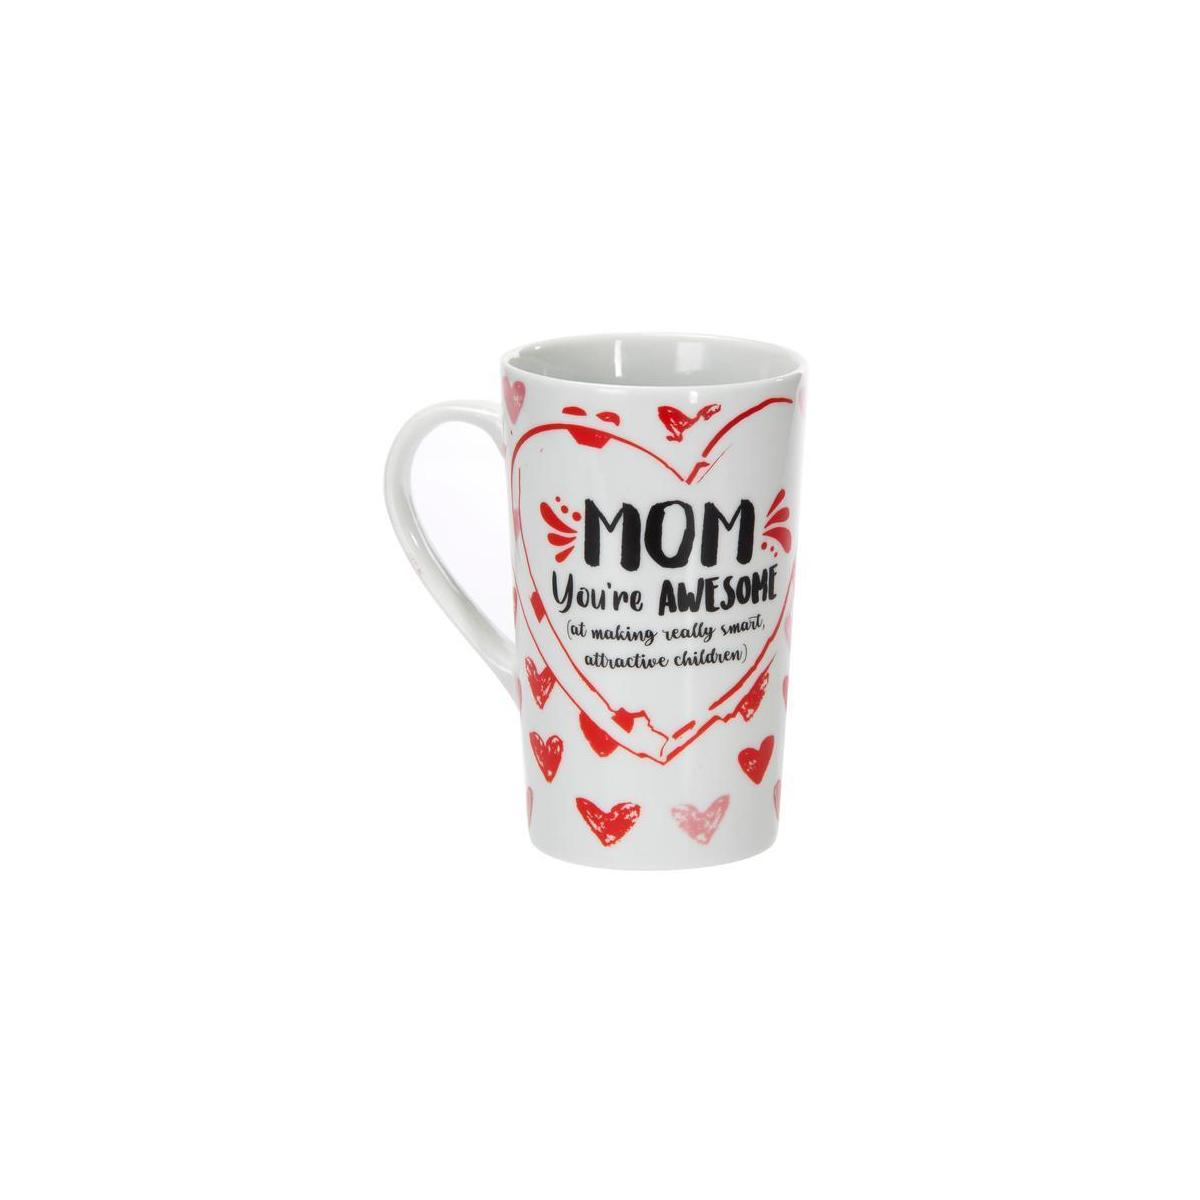 Funny Gift for Mom - Mom You're Awesome 16 oz Ceramic Mom Mug - Mom Coffee Mug for Mothers Day or Birthday Gifts for Mom